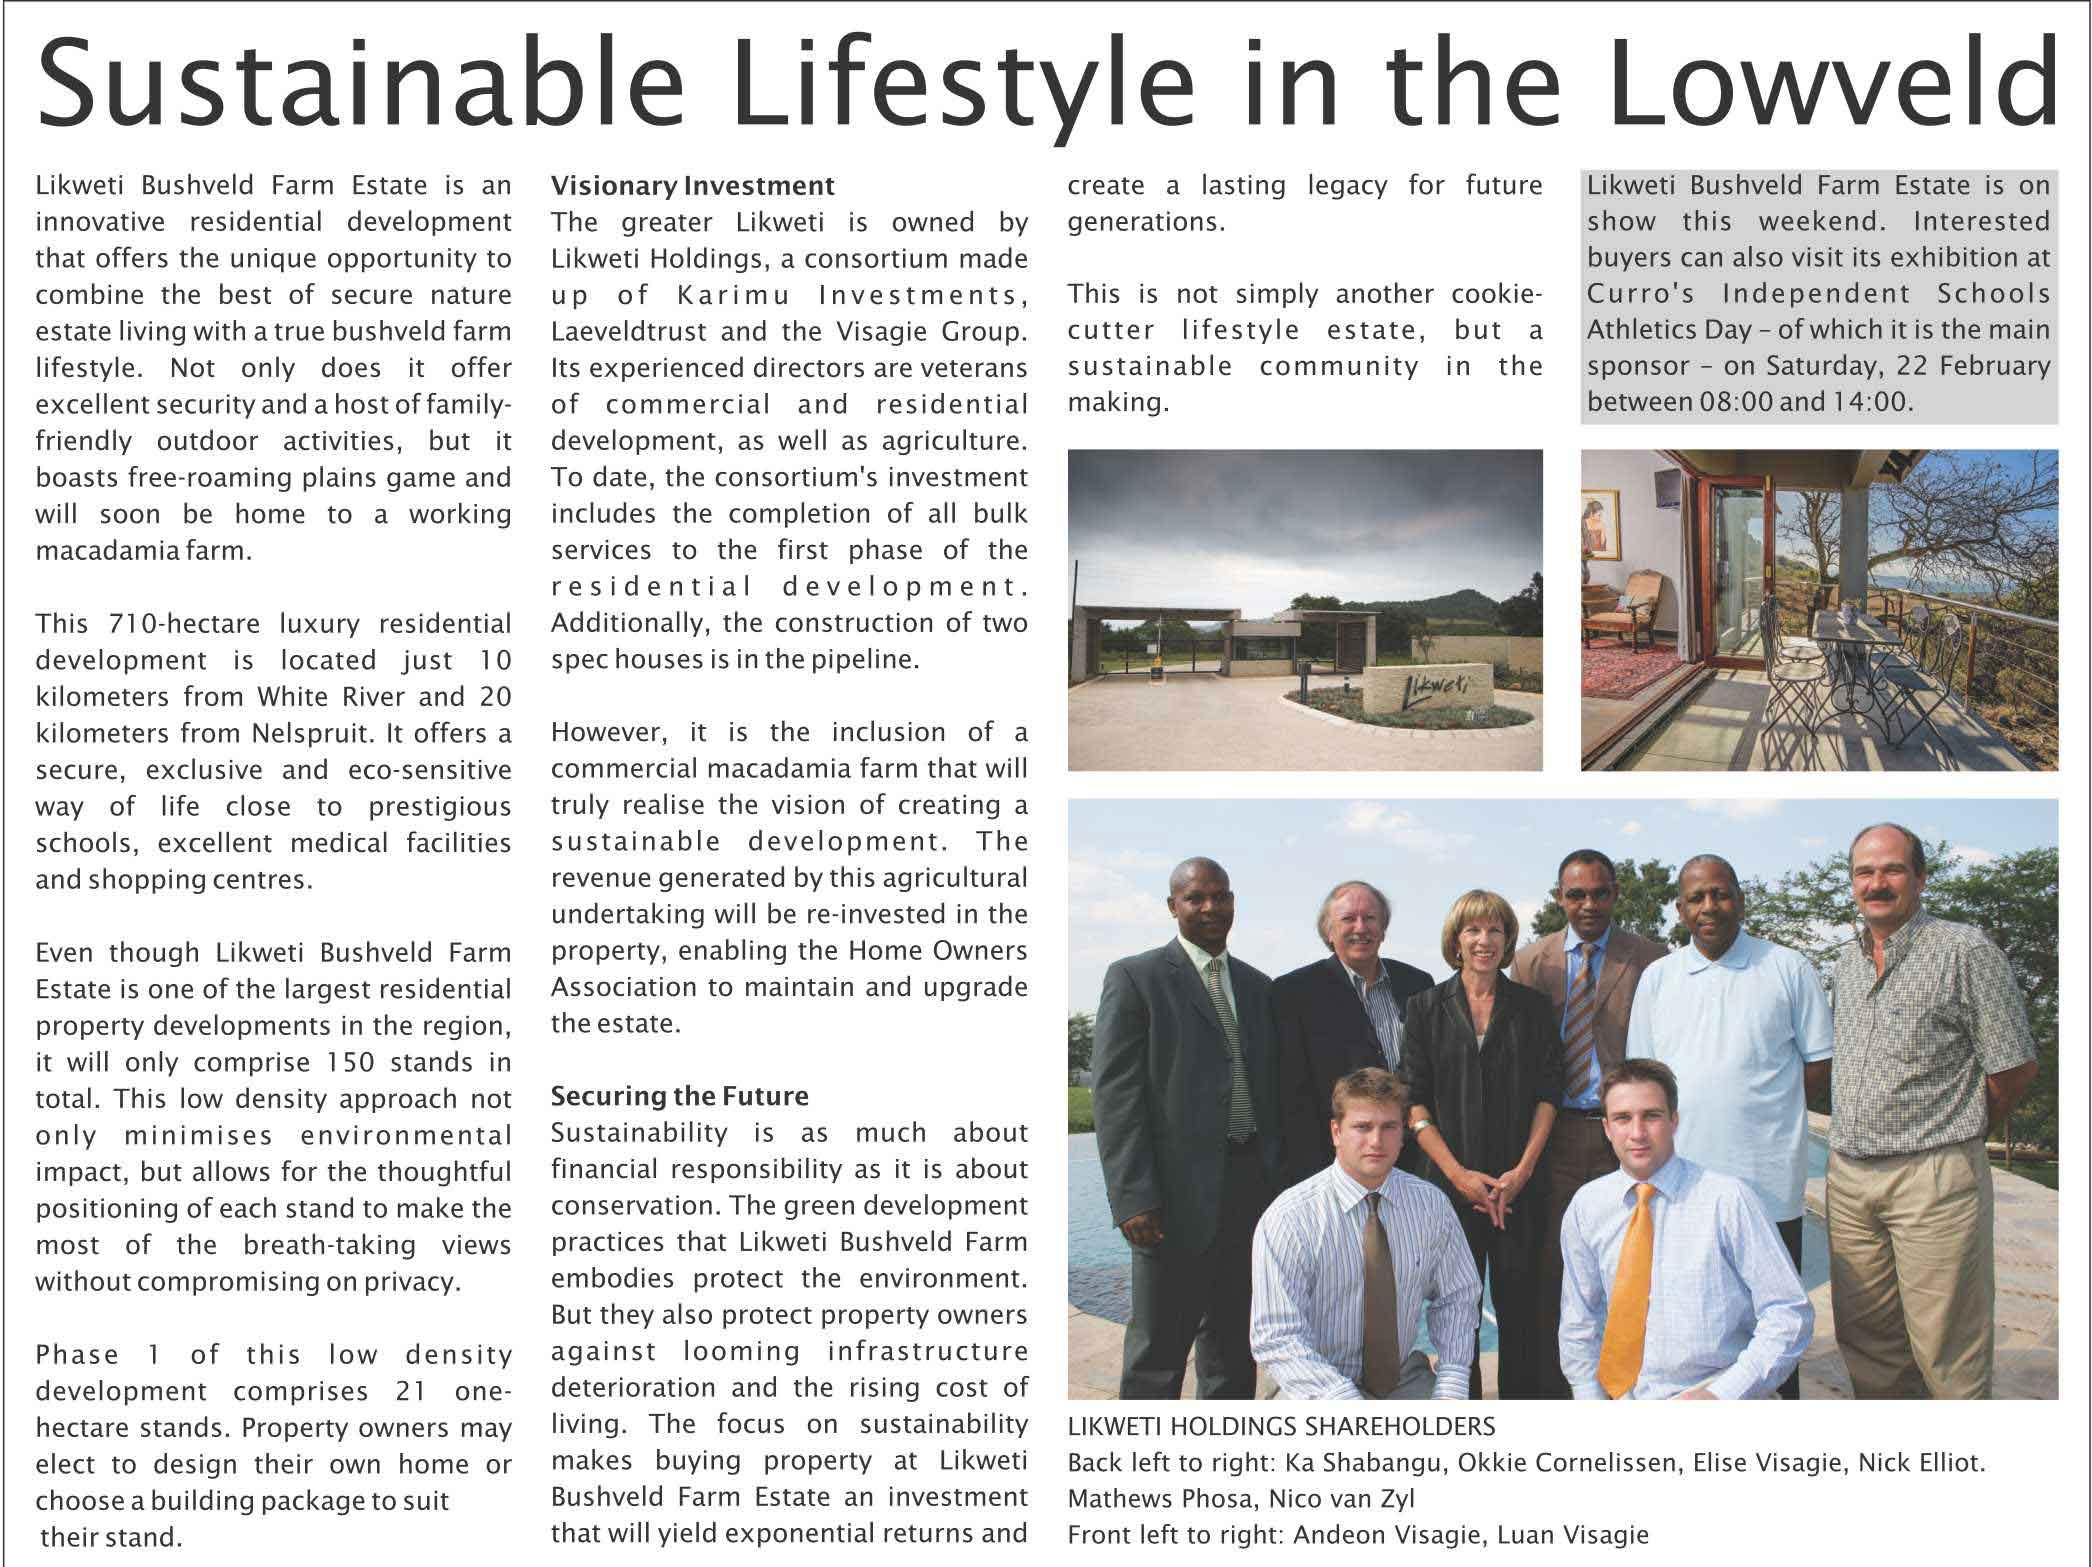 A Sustainable Lifestyle in the Lowveld